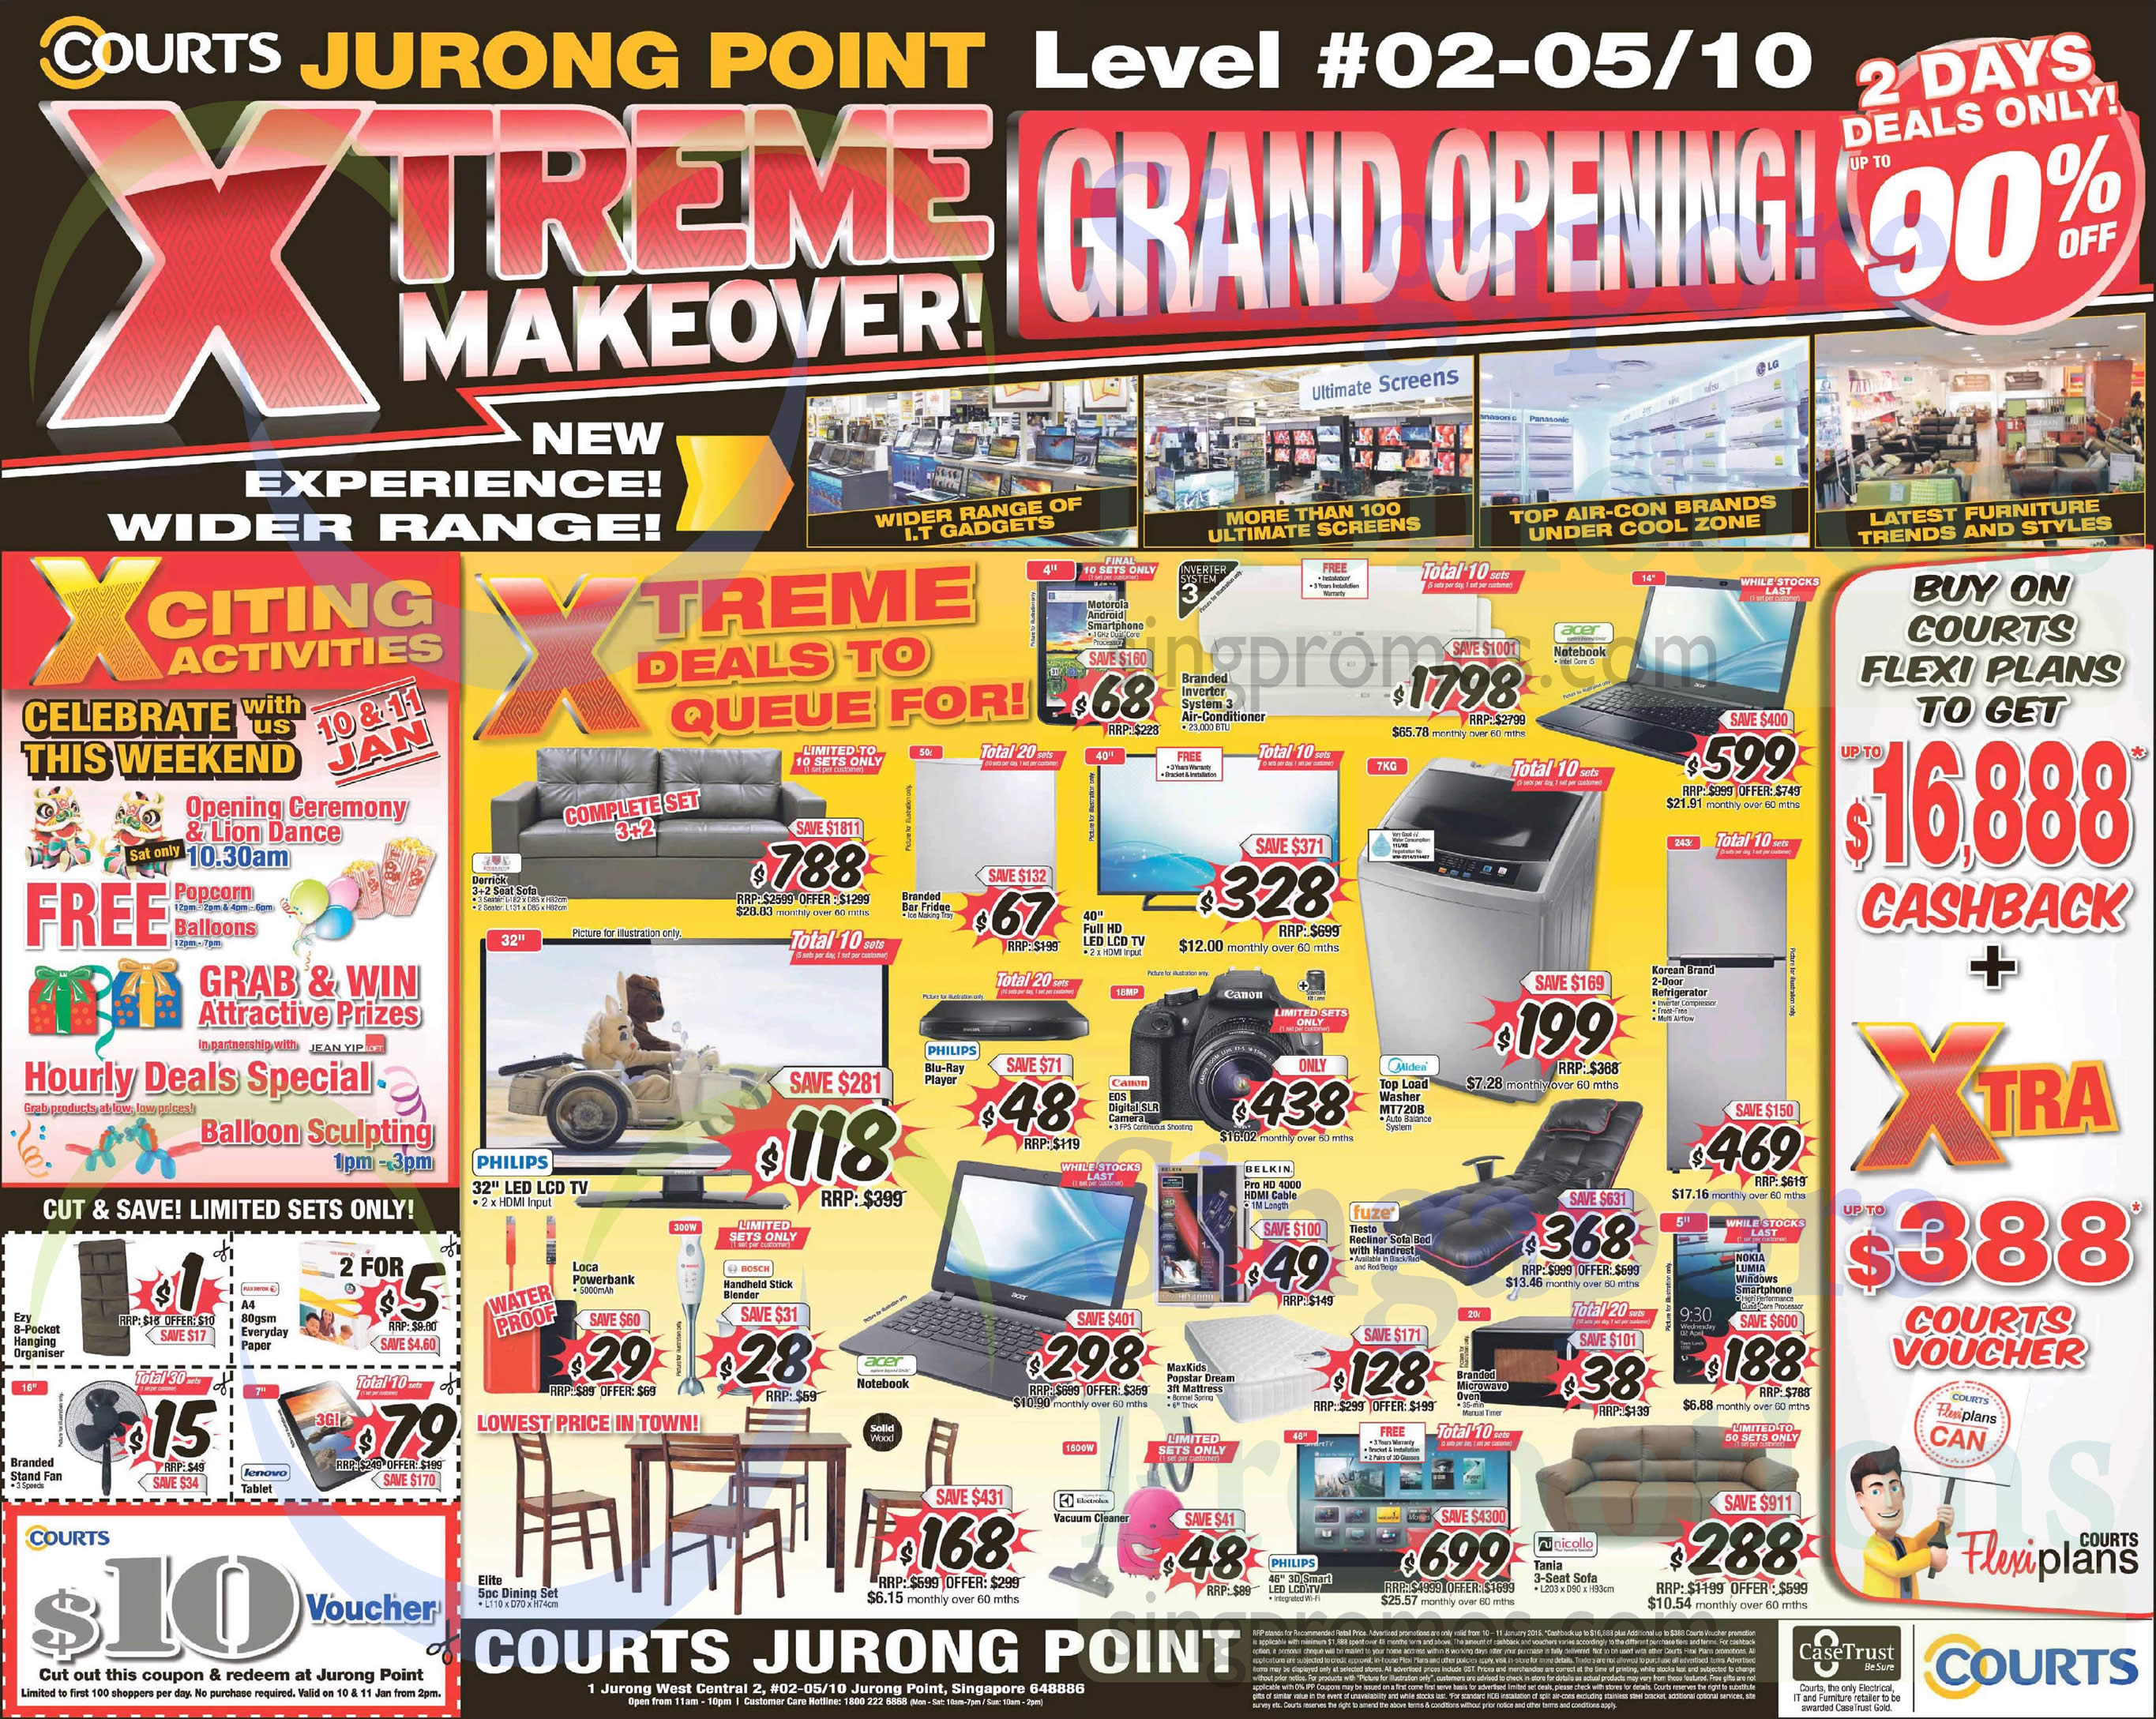 (Till 11 Jan) Jurong Point Grand Opening Furniture, TV, Notebook, Sofa, Dining Set, Fridge, Blu Ray Player, Blender, Vacuum Cleaner, Stylemaster, Acer, Electrolux, Philips, Bosch, Motorola